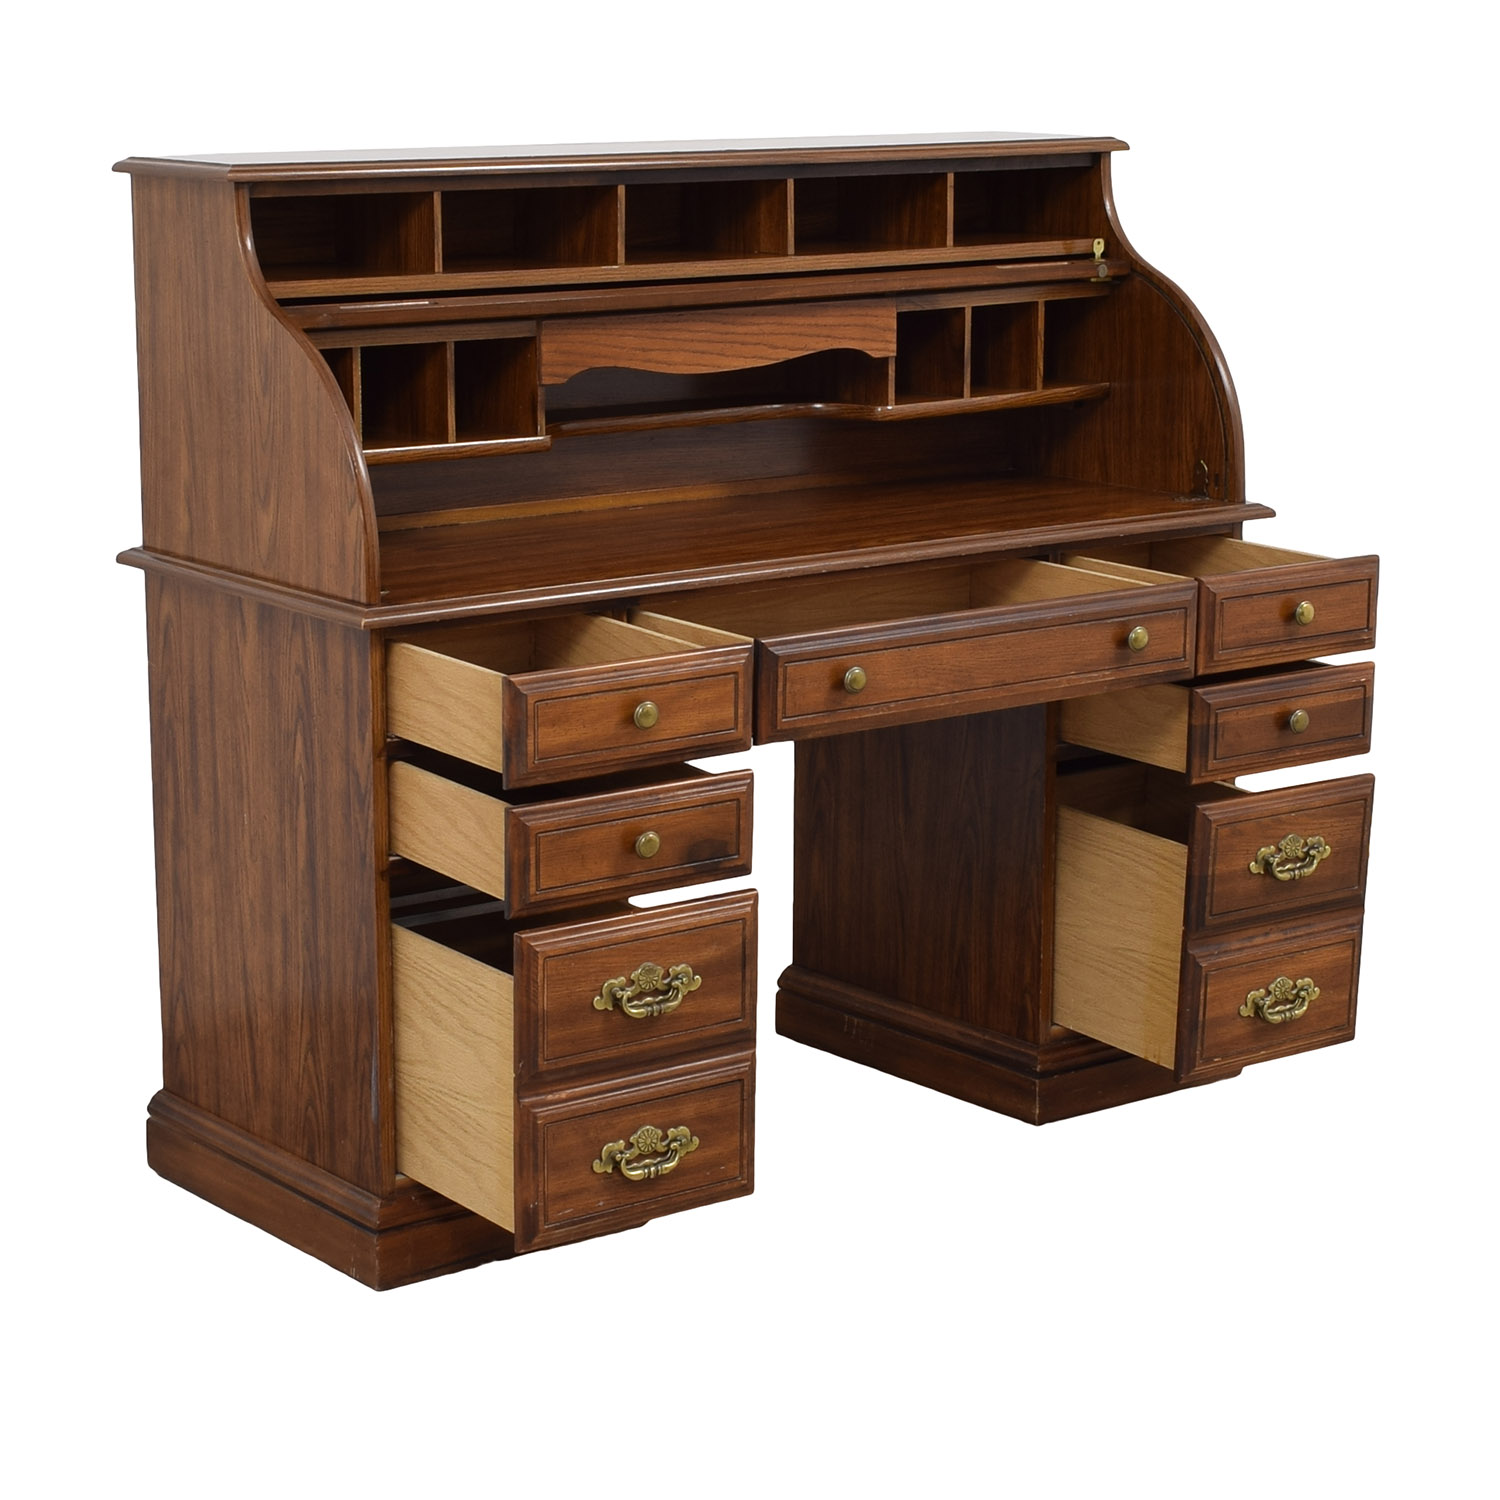 78 OFF  Solid Oak RollTop Desk with Light and Key  Tables